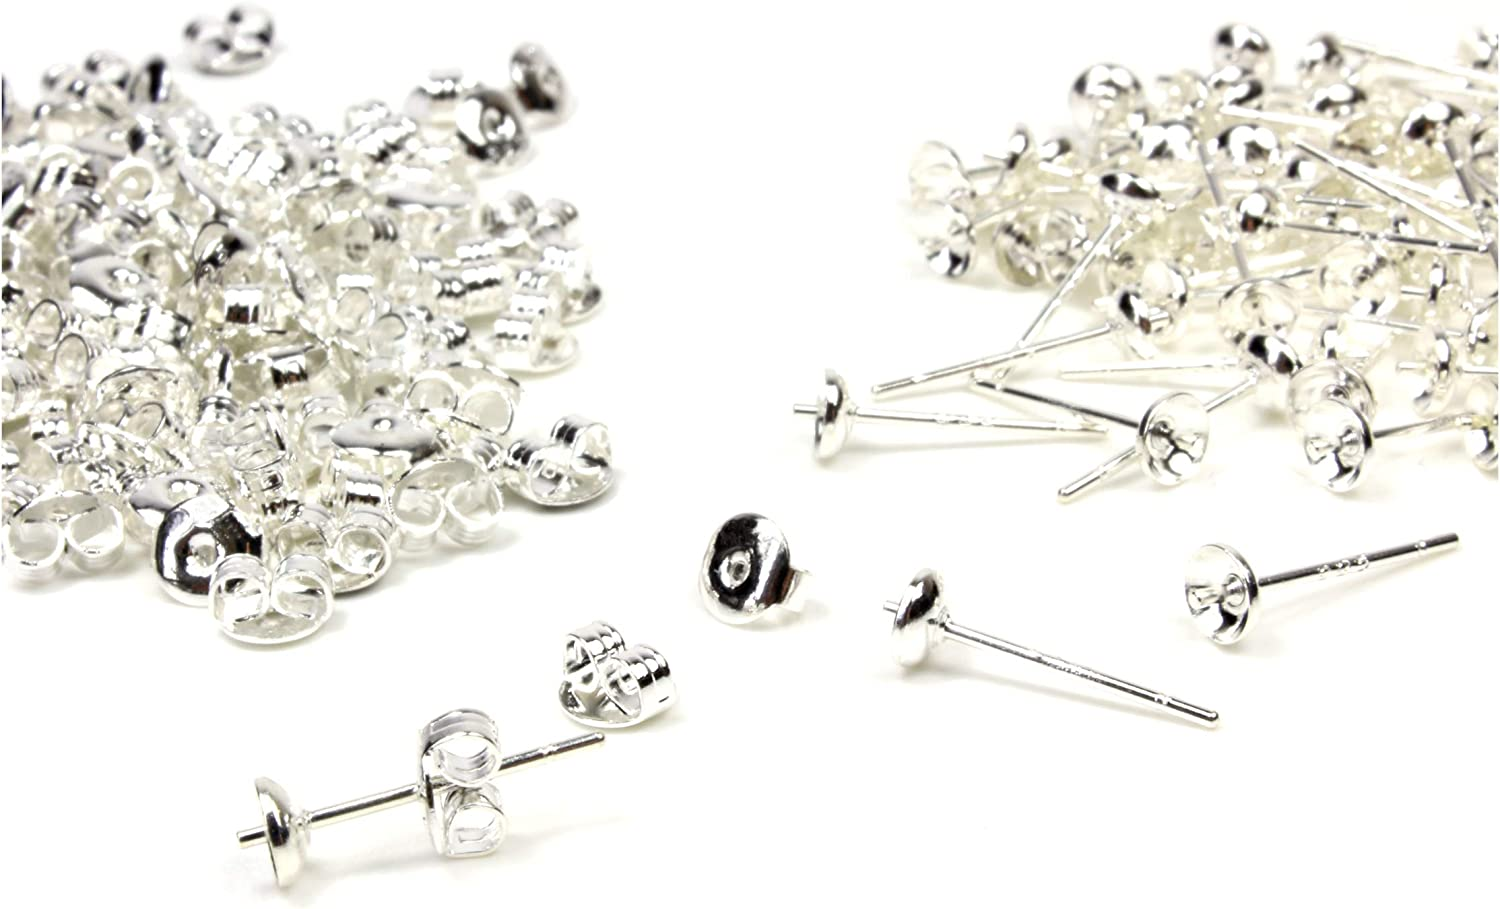 20 Pairs 925 Sterling Silver Earrings Posts Ear Stud Pin Jewelry Supplies